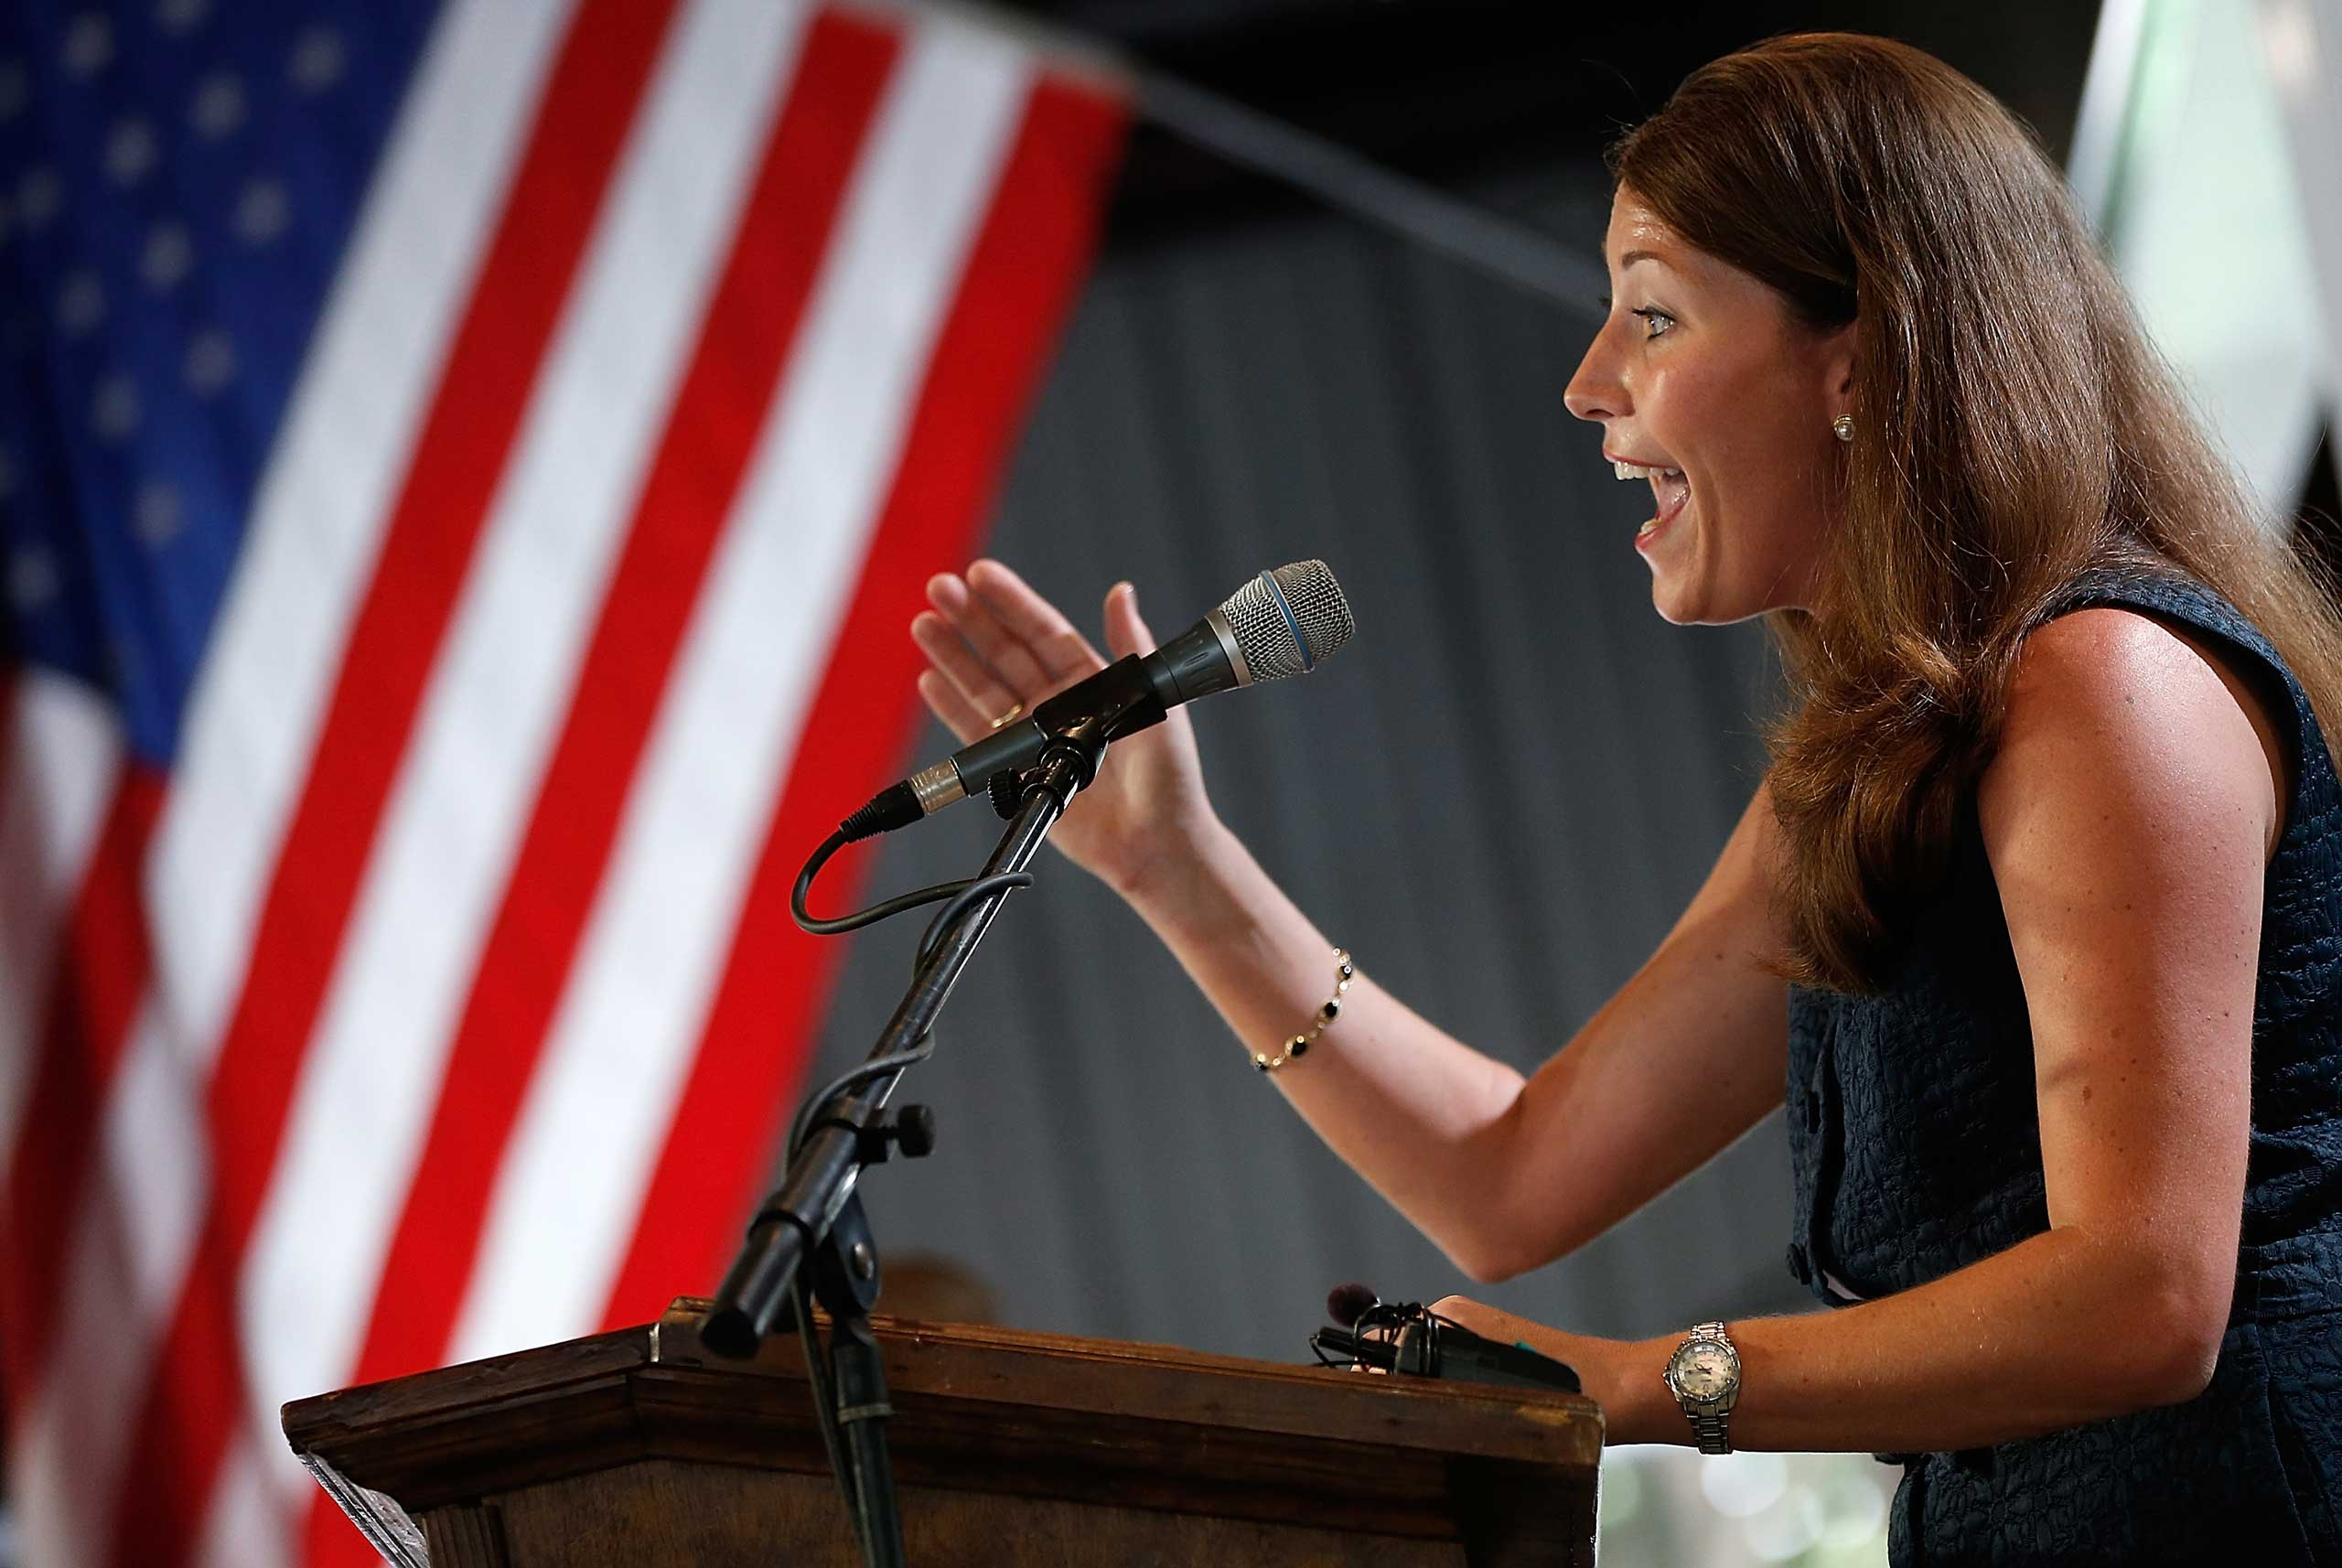 Kentucky's Democratic U.S. Senate nominee, and Kentucky Secretary of State, Alison Lundergan Grimes speaks at the Fancy Farm picnic in Fancy Farm, Ky. on Aug.  2, 2014.